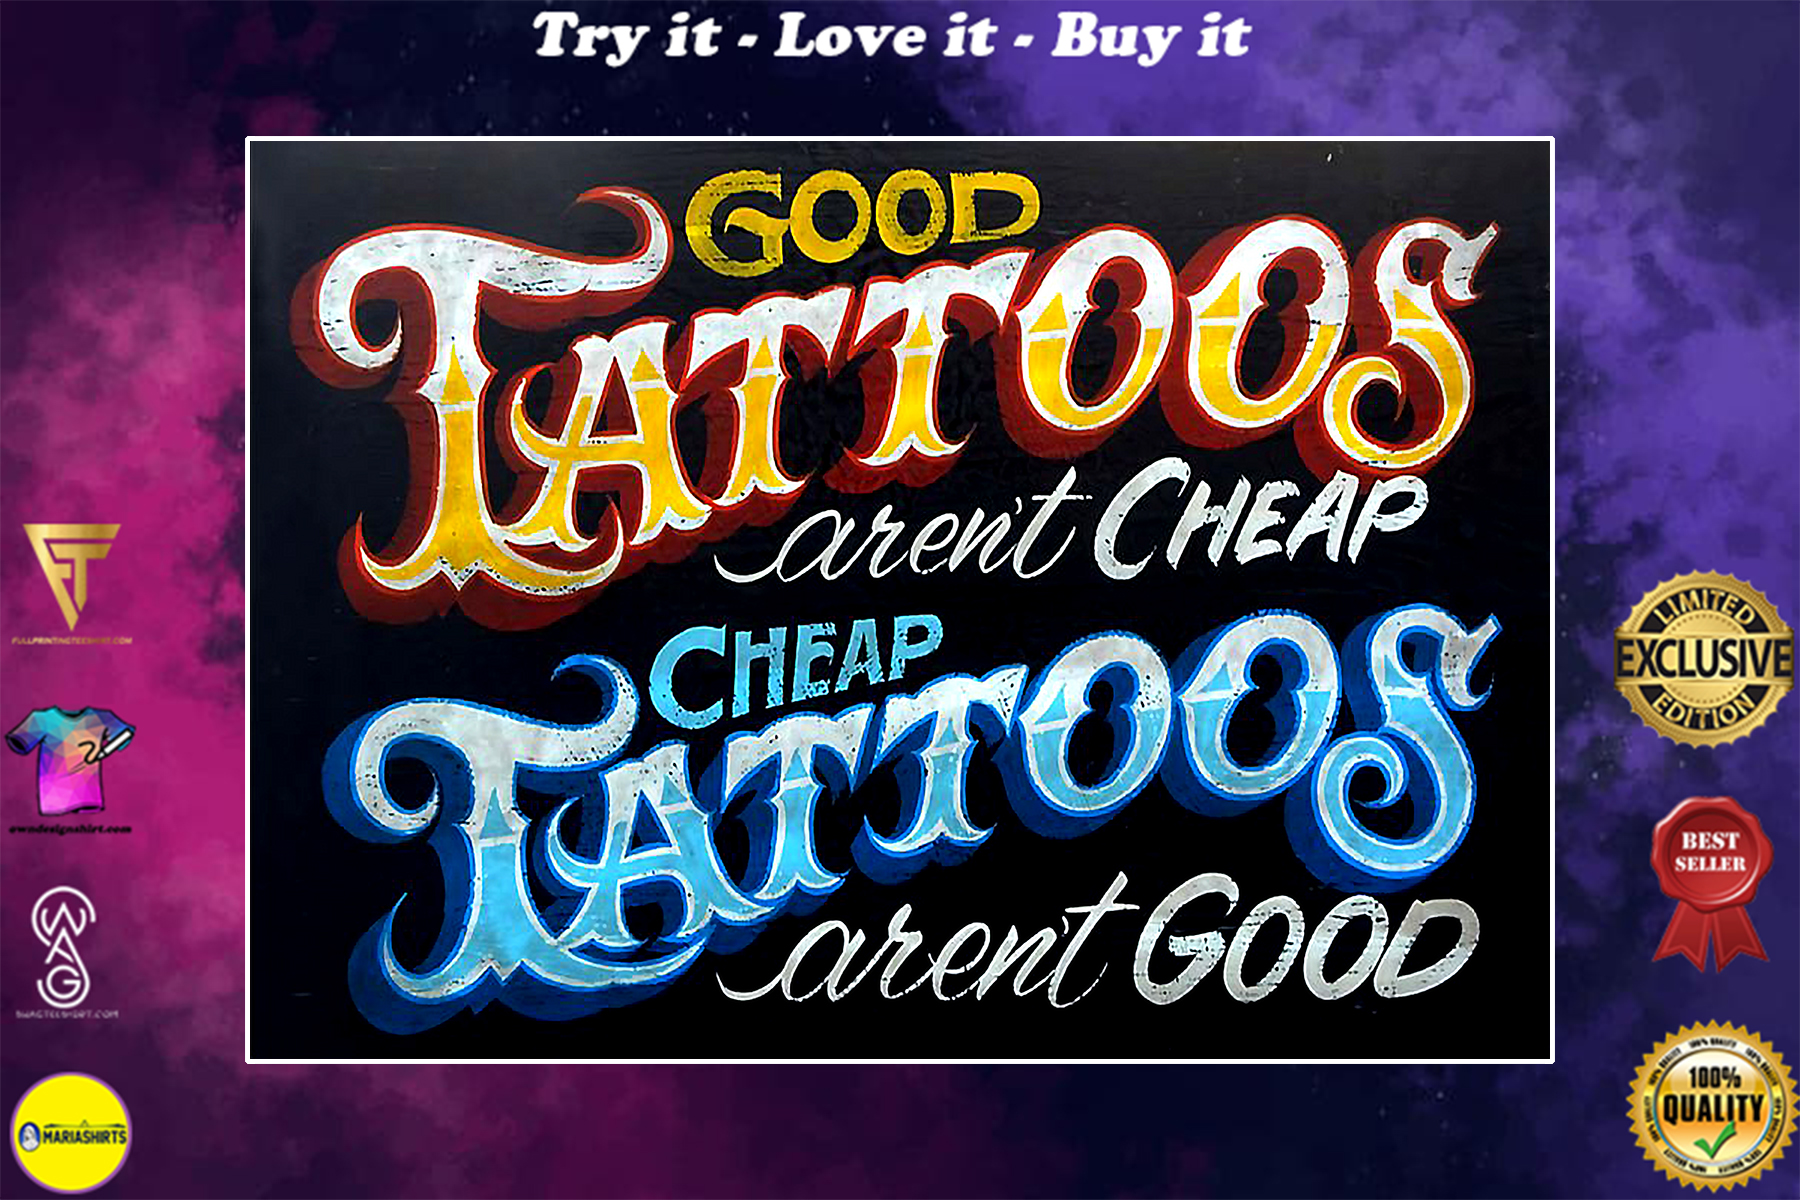 good tattoos arent cheap and cheap tattoos arent good poster vintage poster